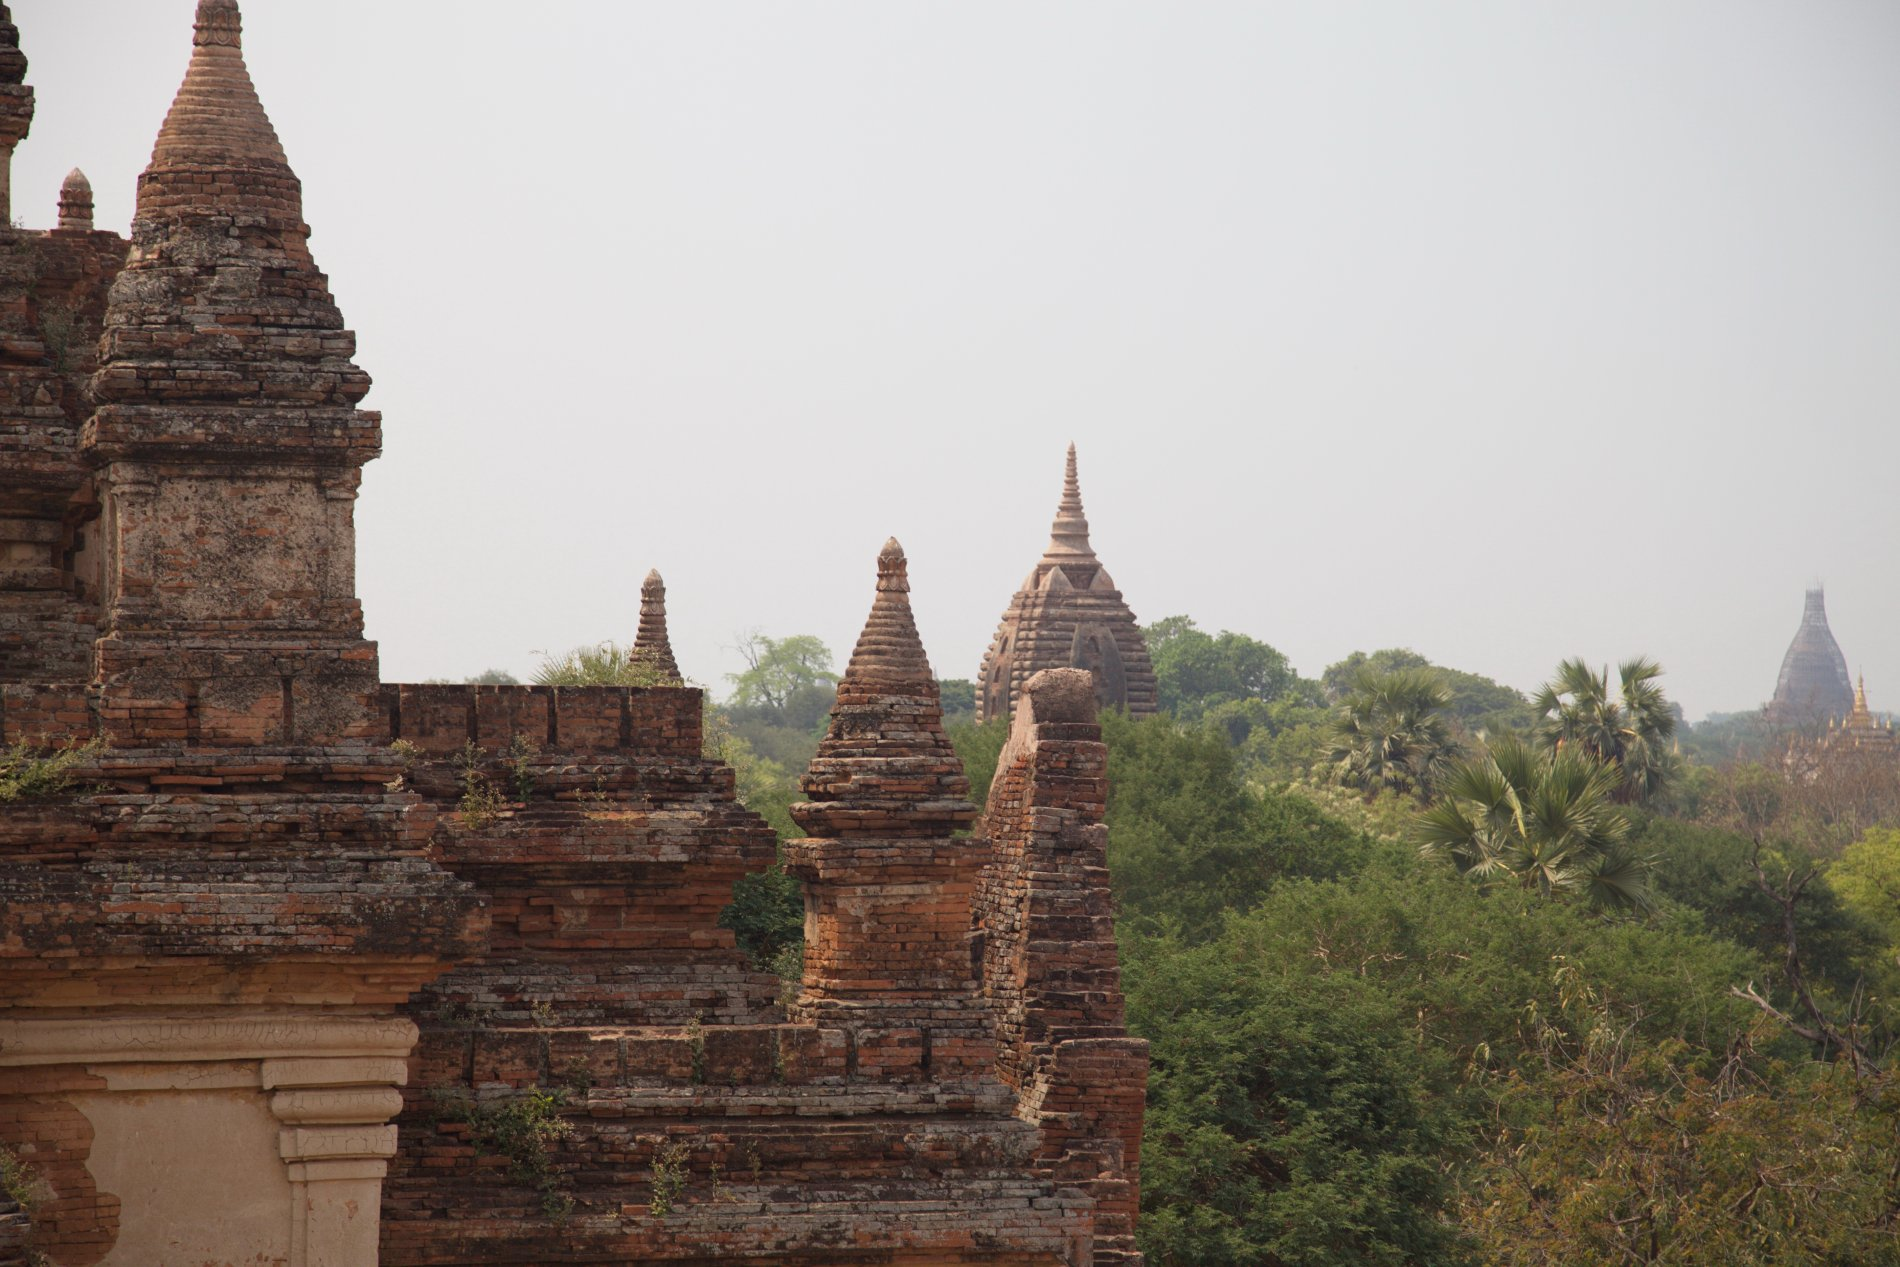 Bagan_277.jpg-commment